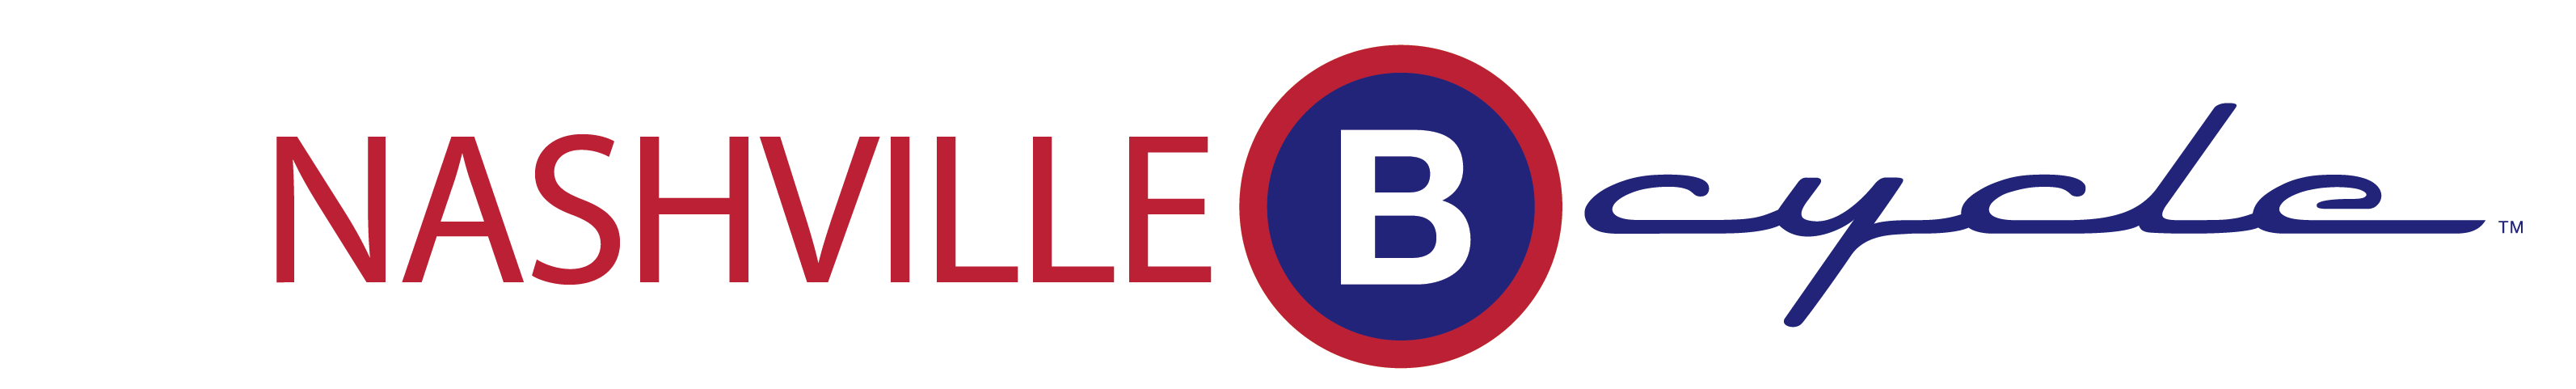 Nashville_B-cycle_Logo-01.png